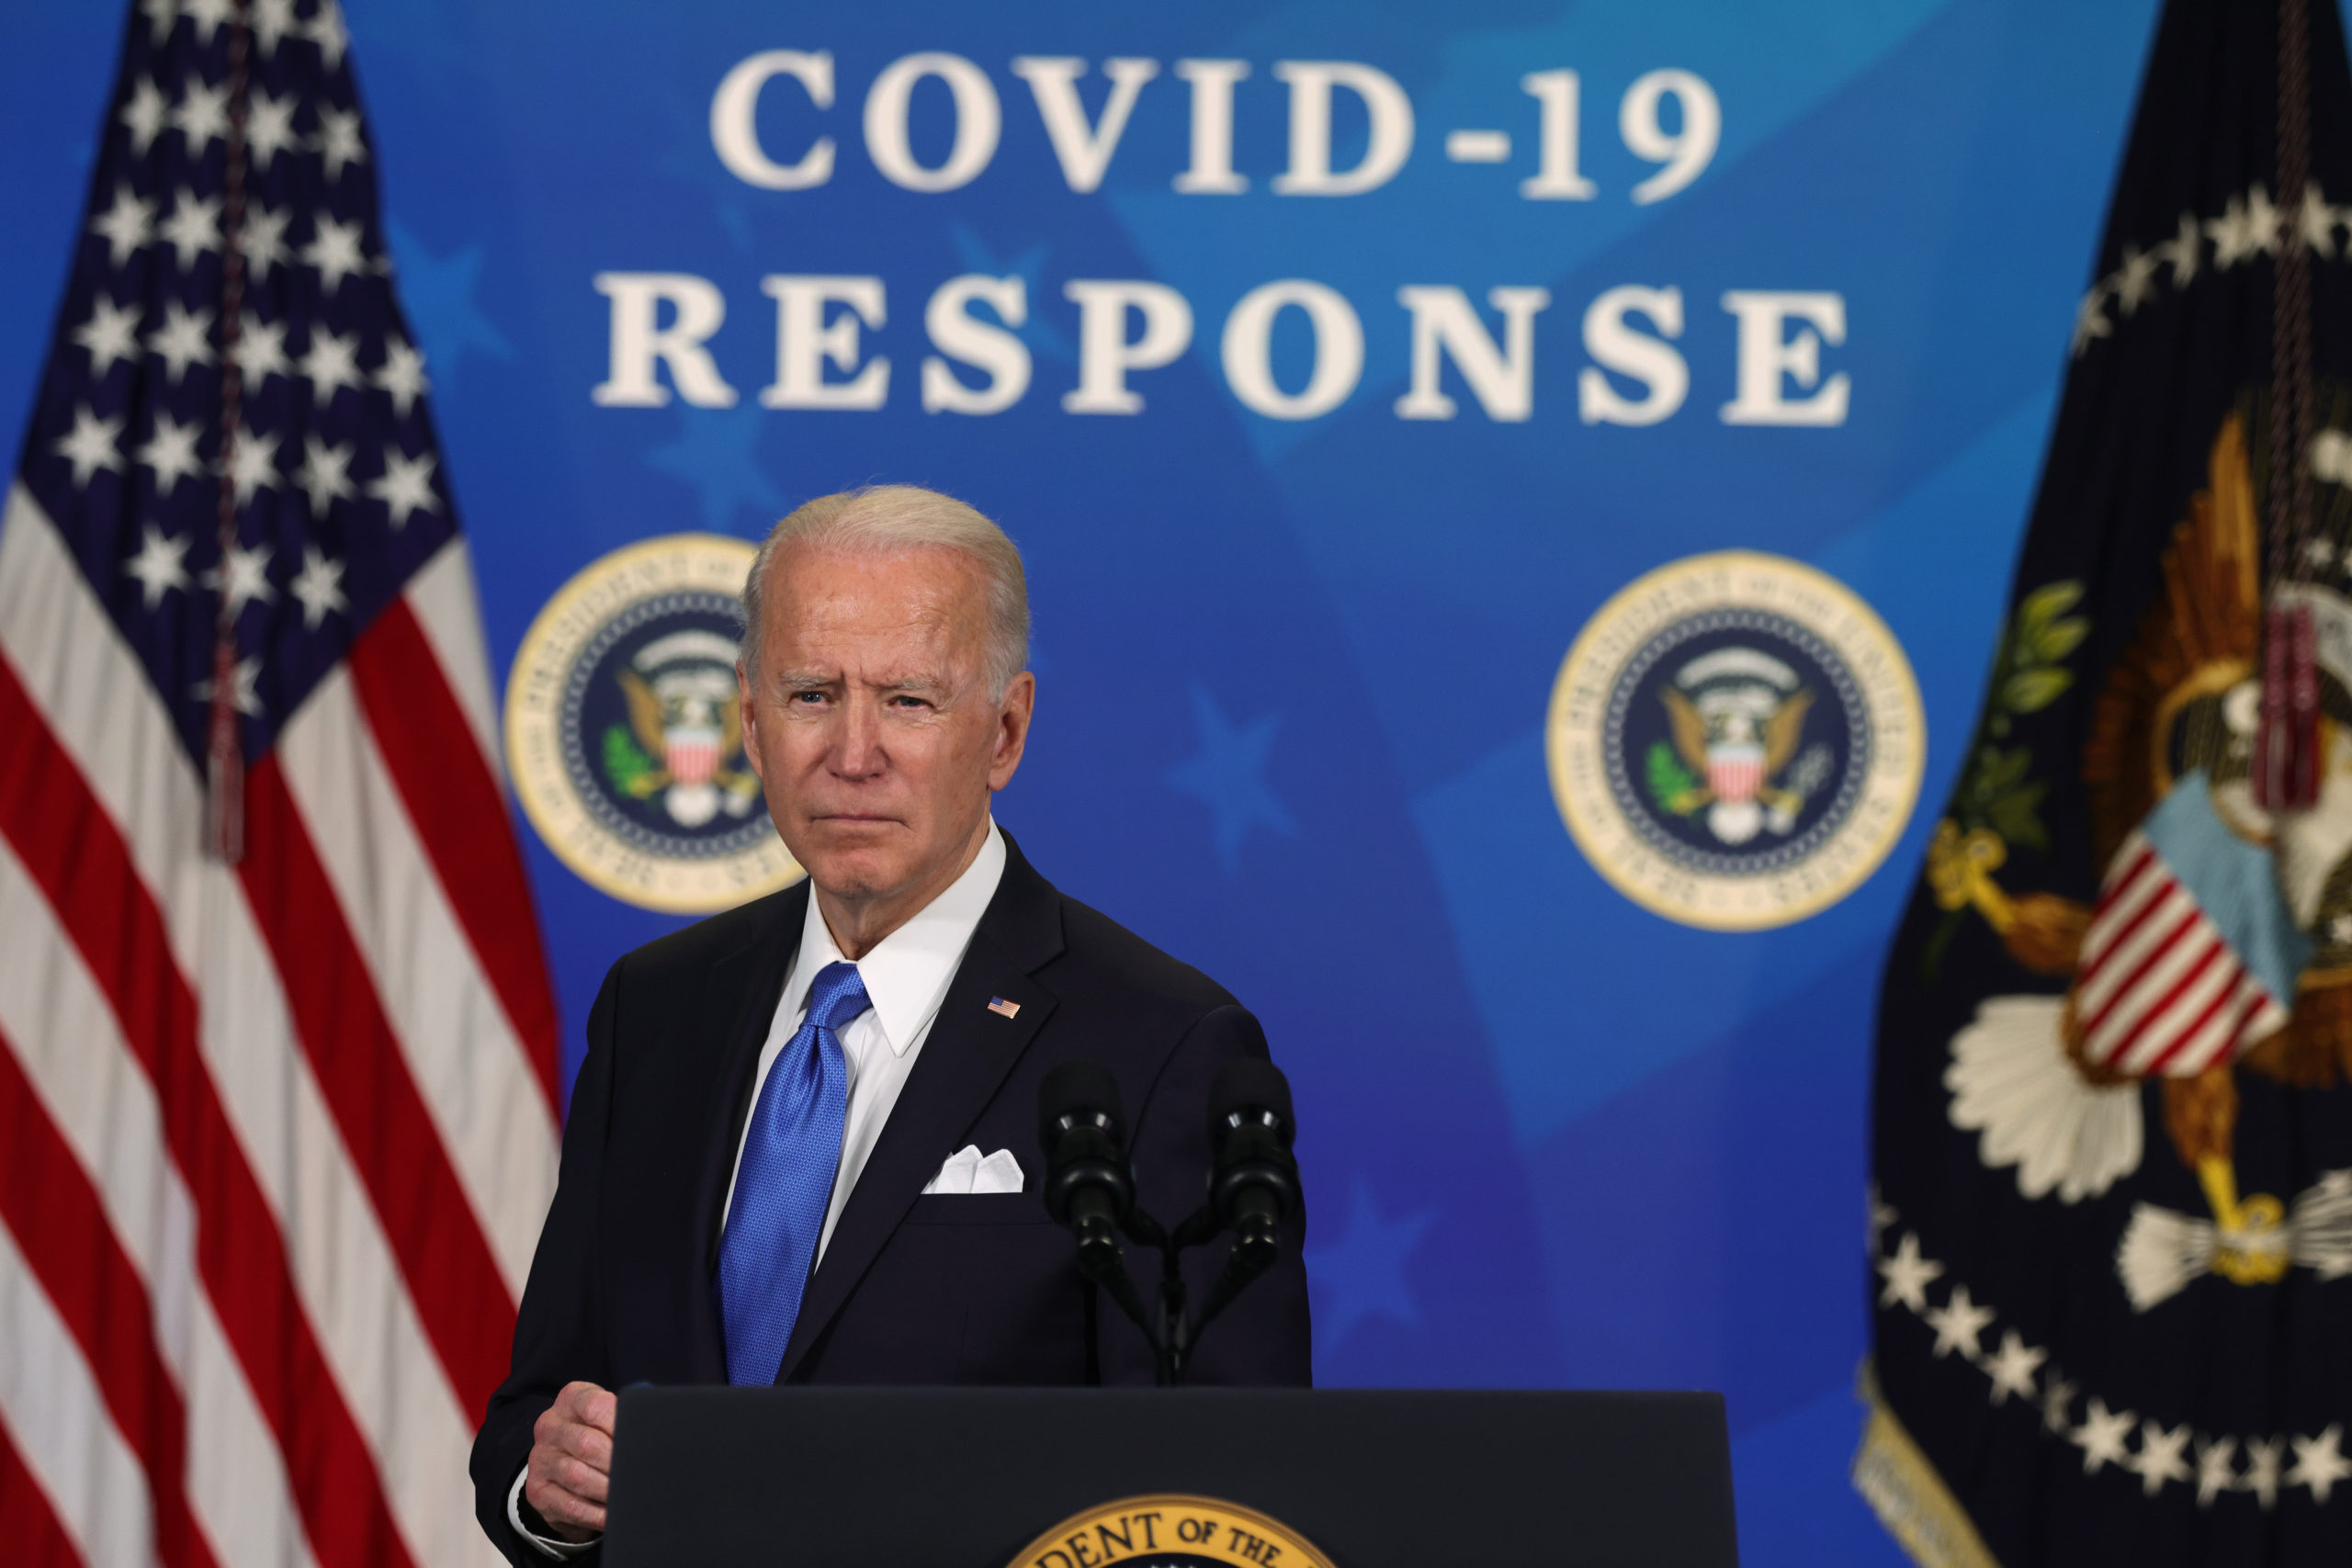 WASHINGTON, DC - MARCH 10: U.S. President Joe Biden speaks during an event with the CEOs of Johnson & Johnson and Merck at the South Court Auditorium of the Eisenhower Executive Office Building March 10, 2021 in Washington, DC. President Biden announced that the government will purchase 100 million more doses of the Johnson & Johnson COVID-19 vaccine. (Photo by Alex Wong/Getty Images)